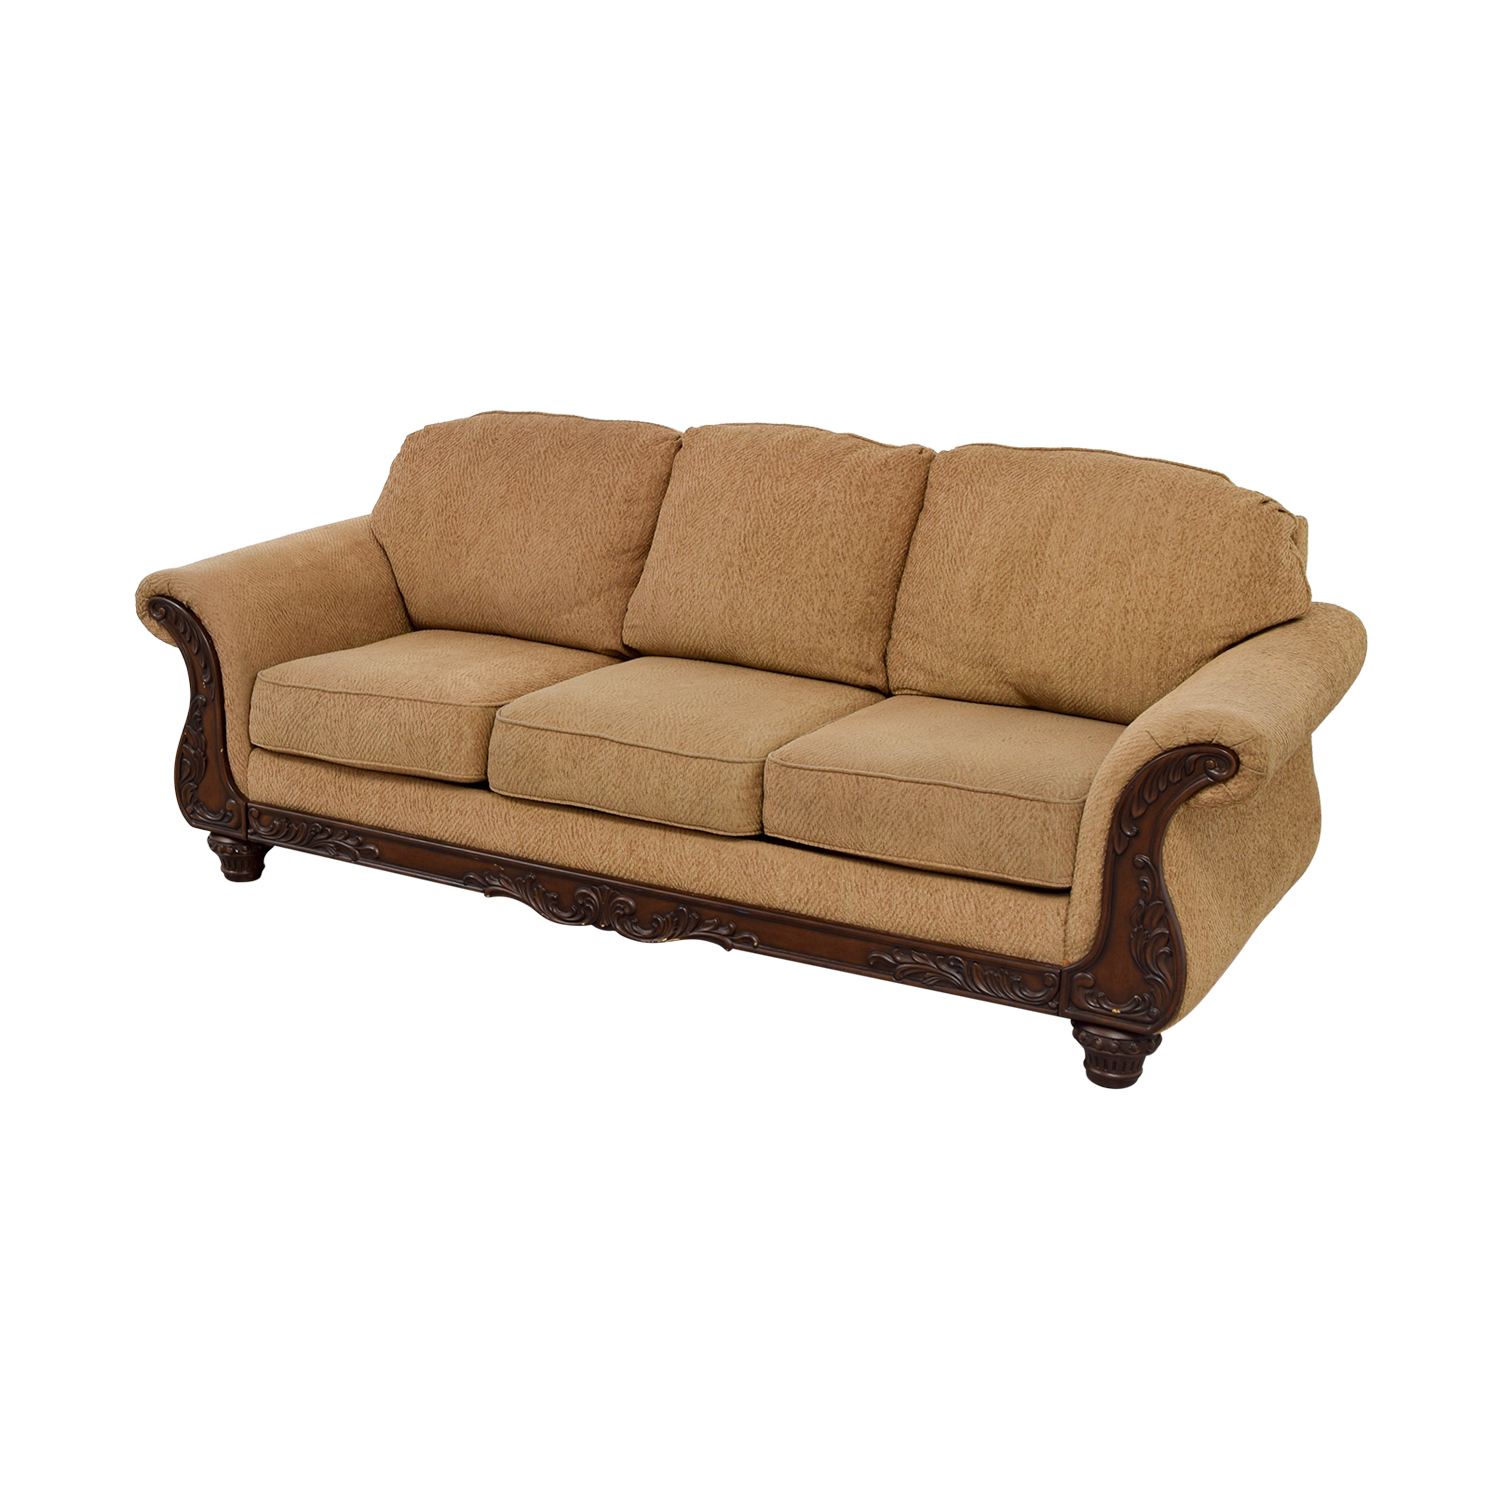 Havertys Gold Carved Wood Couch Havertys